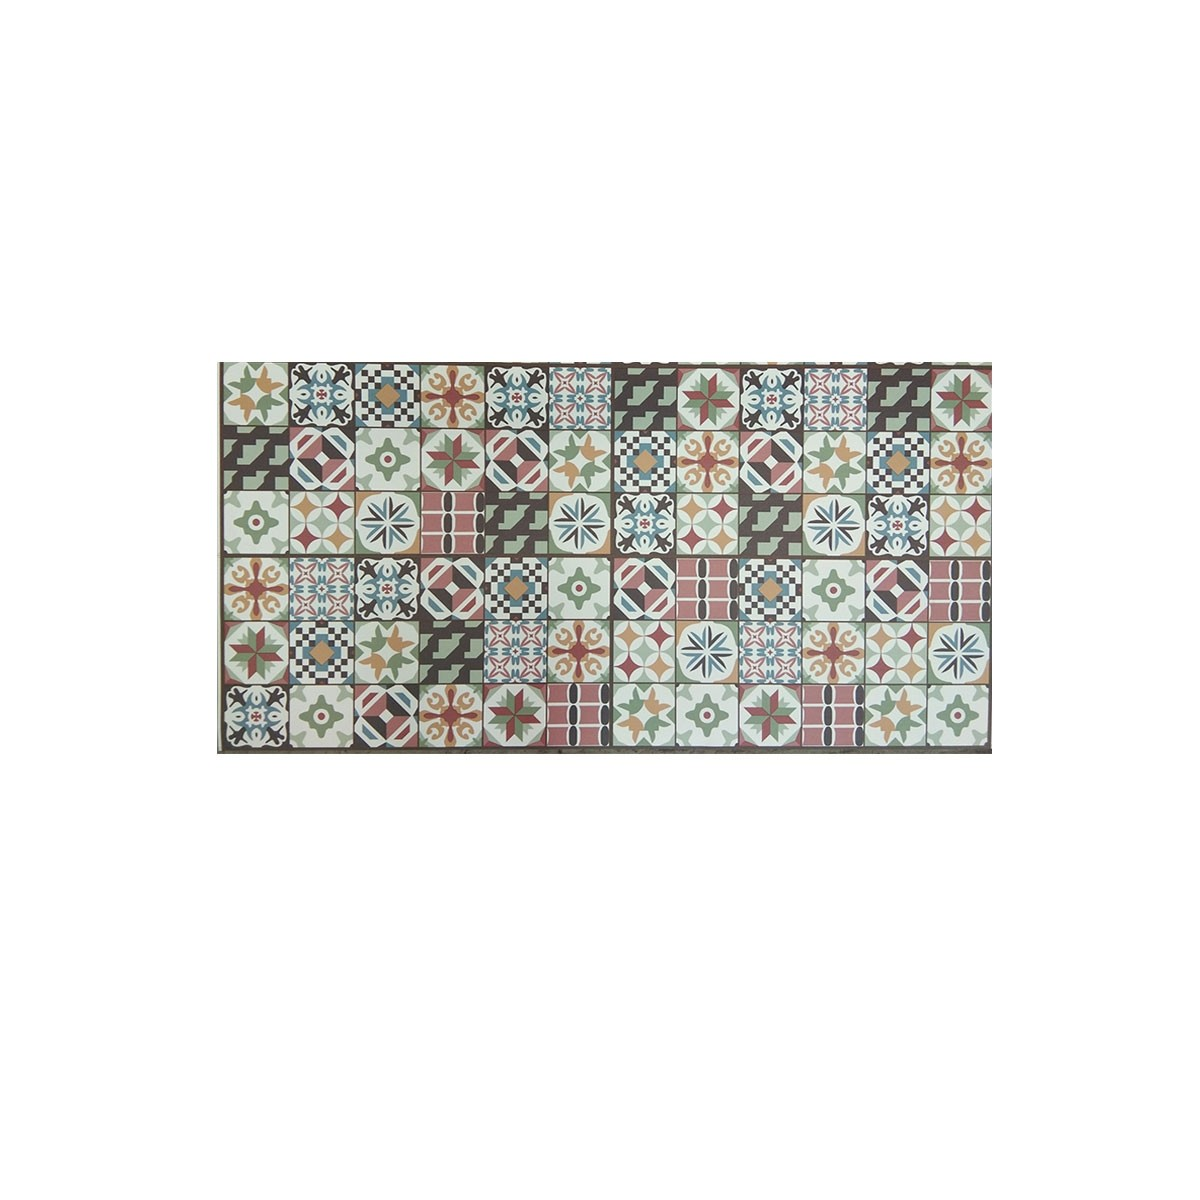 DECORAPORT NWS Wall Panel, Casablanca World, 4'' x6'' (NCC-04) (Sample)